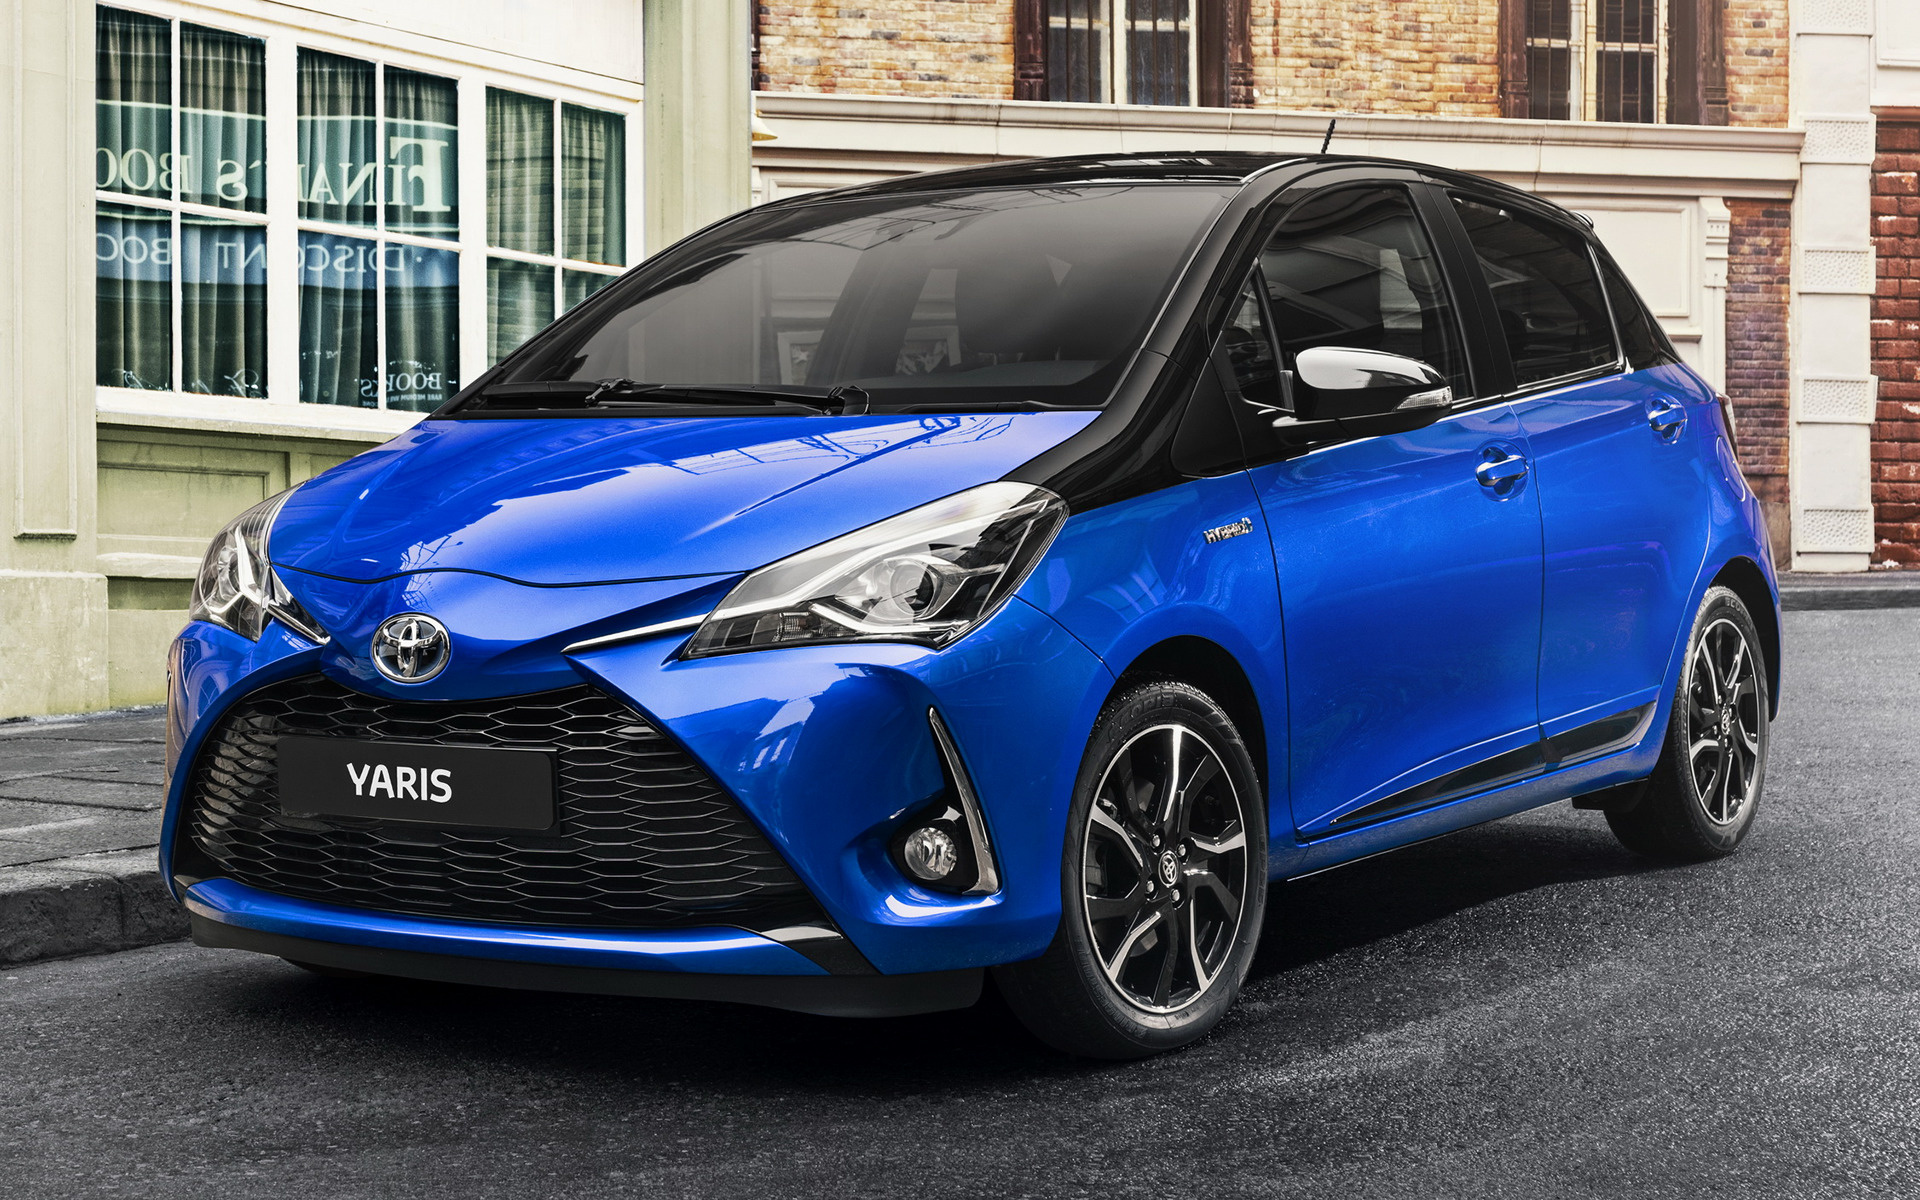 toyota yaris hybrid 5 door 2017 wallpapers and hd images car pixel. Black Bedroom Furniture Sets. Home Design Ideas